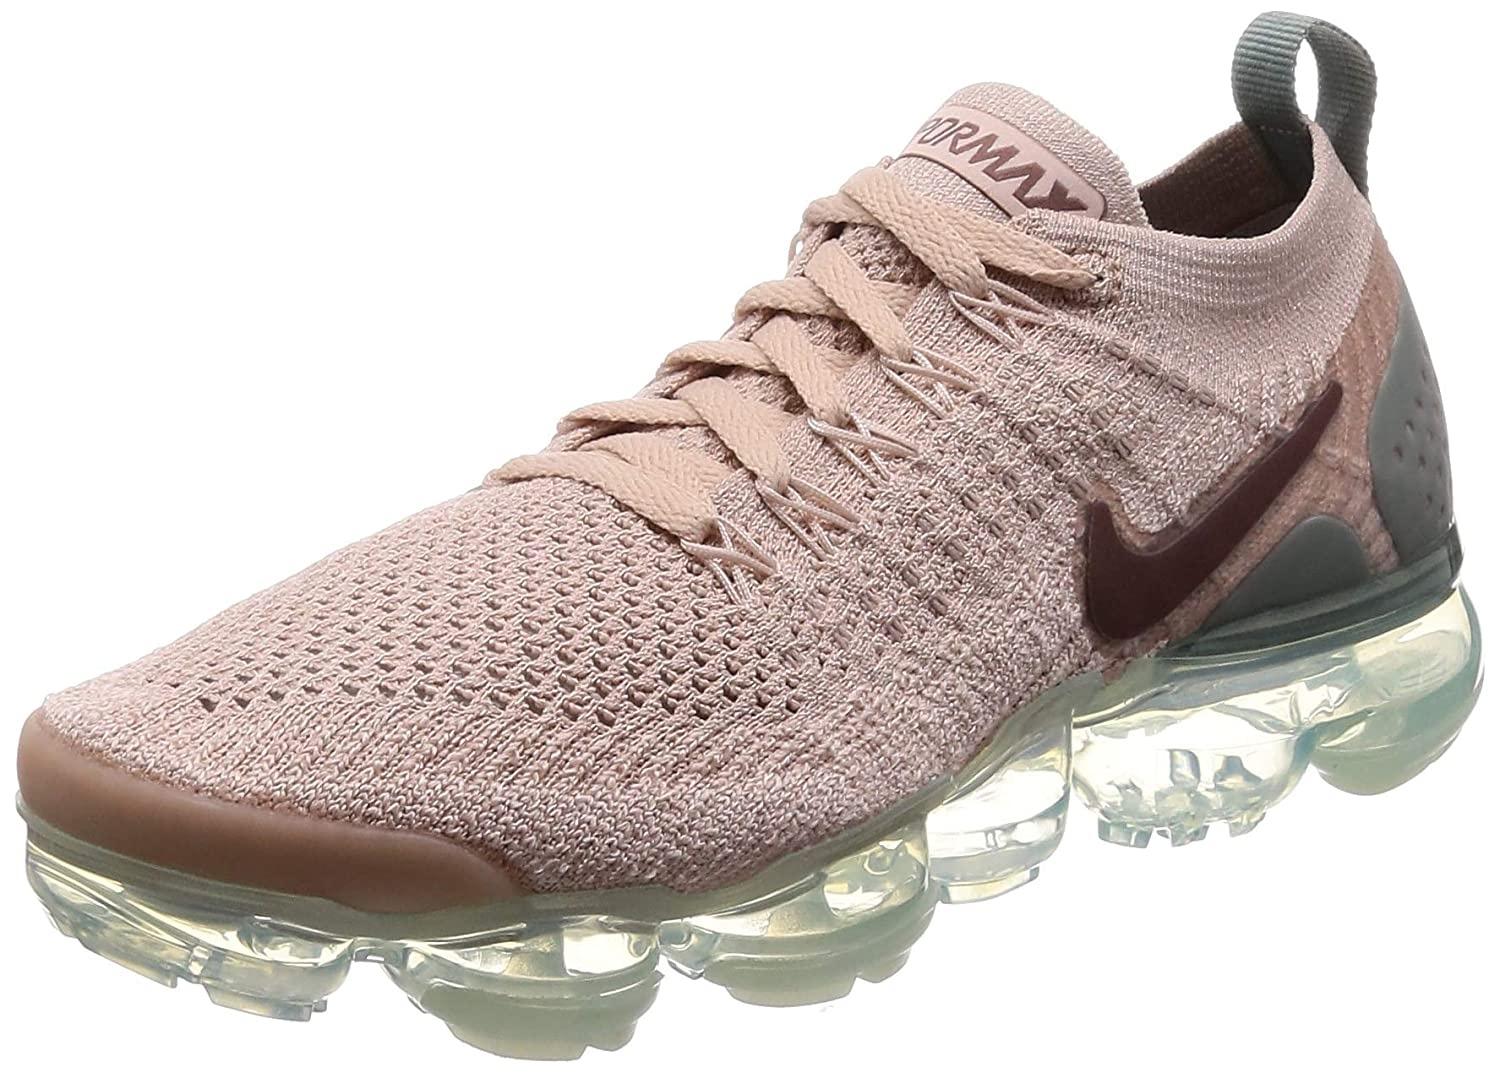 hot sale online 9204e 3cc1a Nike Air Vapormax Flyknit 2 Womens